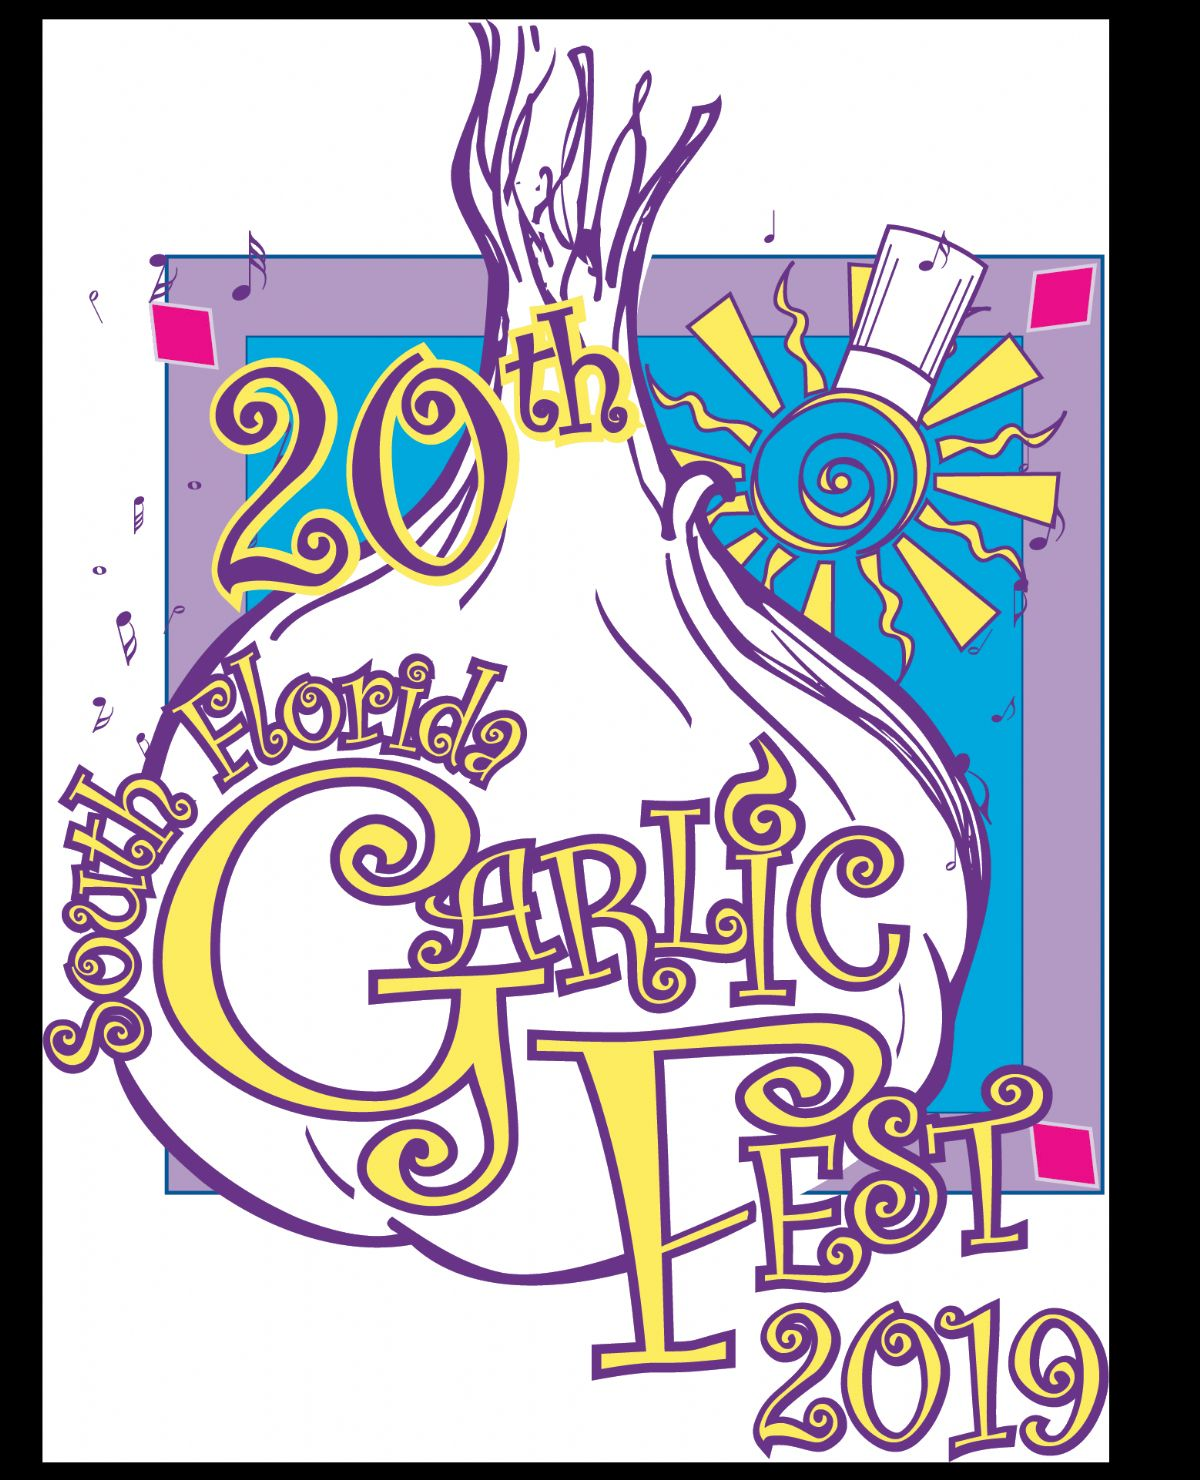 20th Annual South Florida Garlic Fest